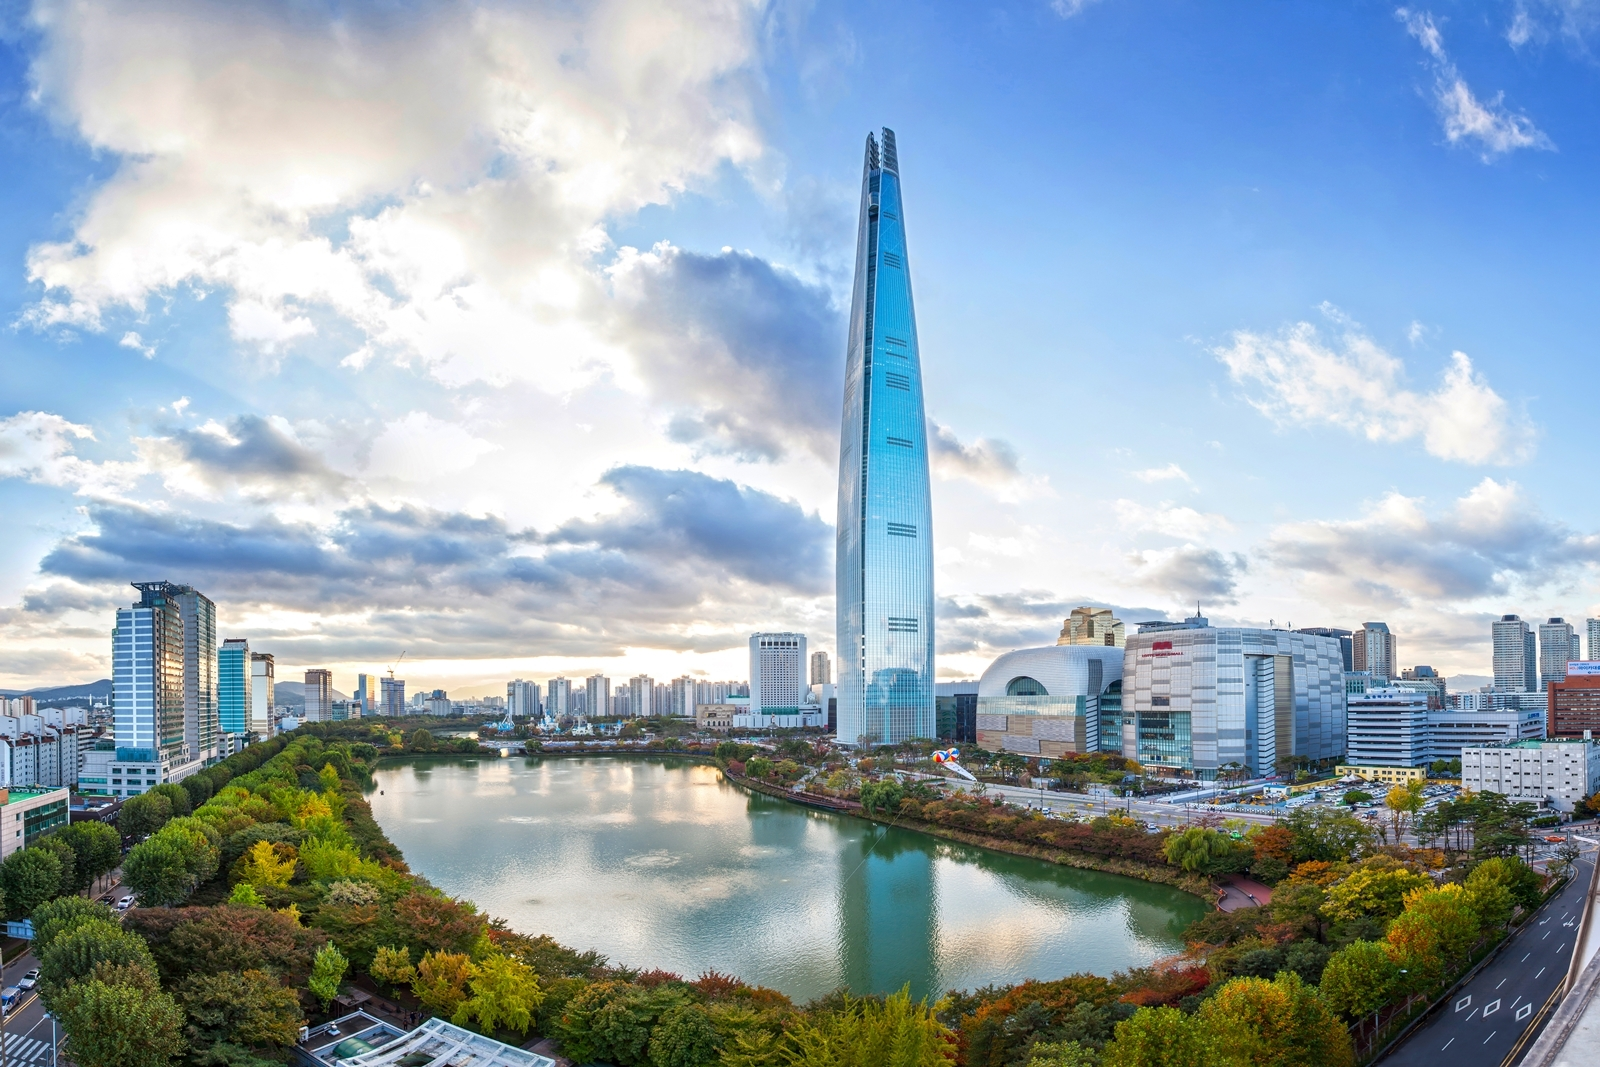 Overall3_LotteWorldTower_(c)Lotte_Group